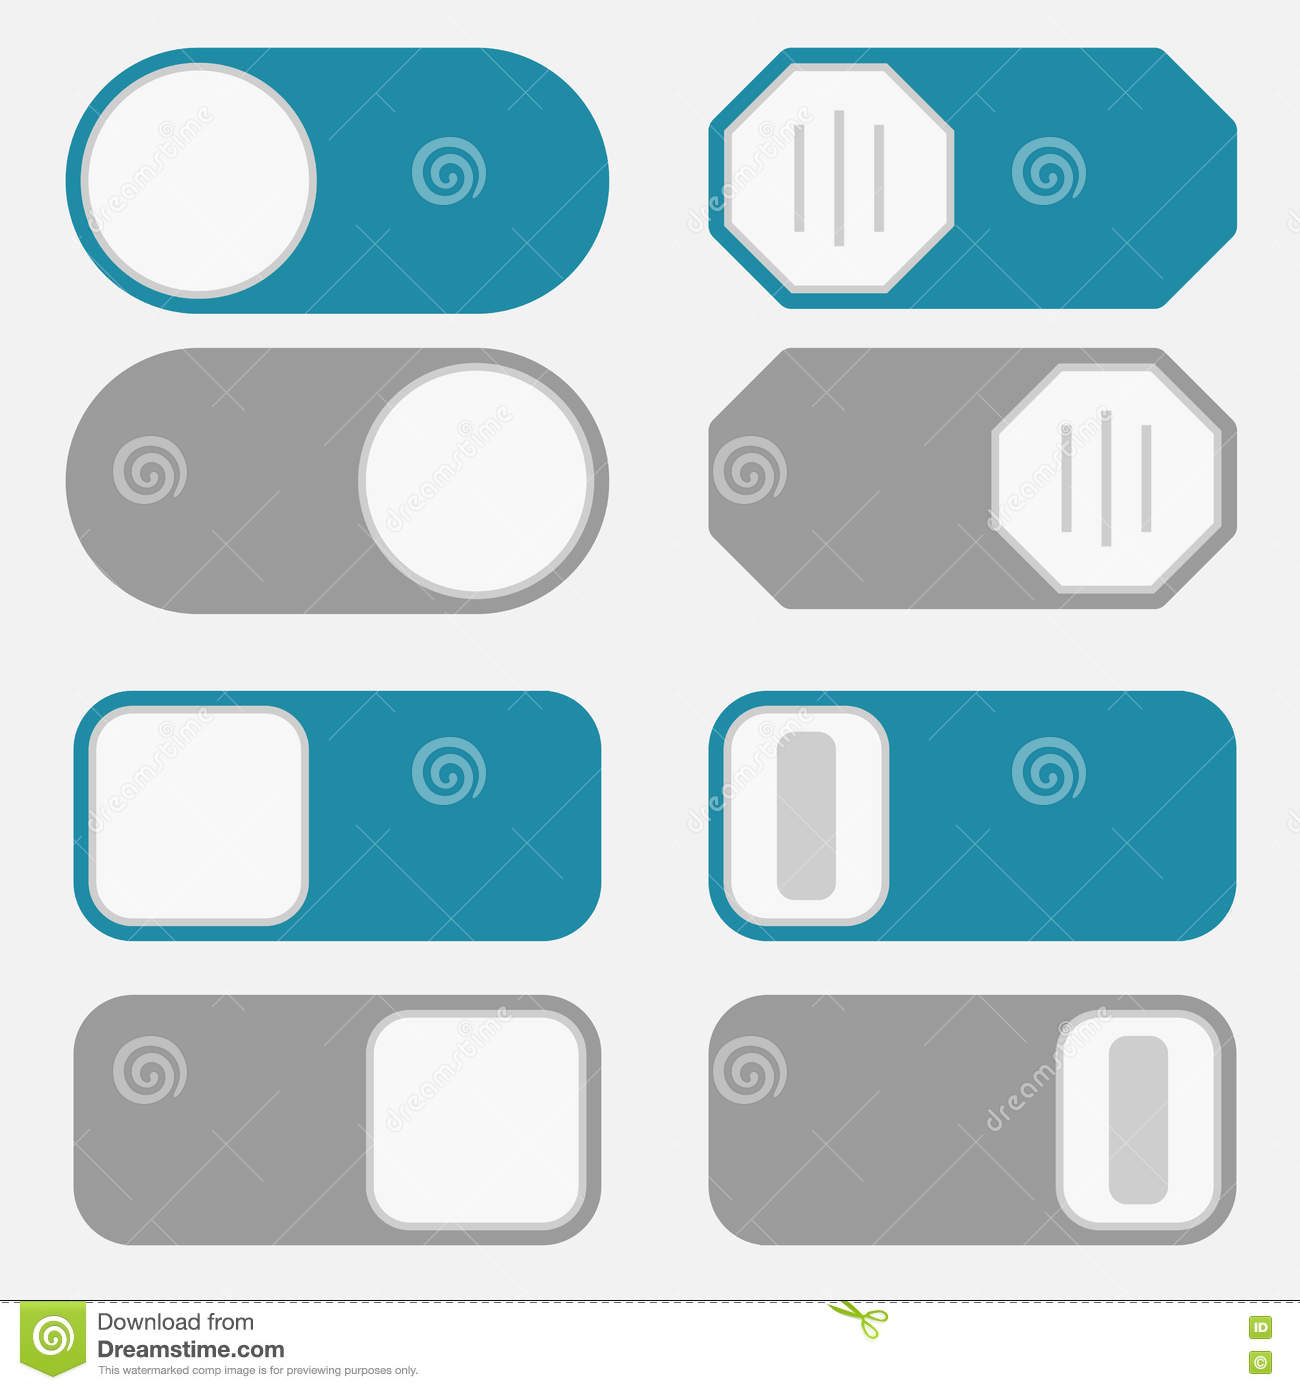 Toggle Switch, On Off Button Stock Vector - Illustration of contact ...